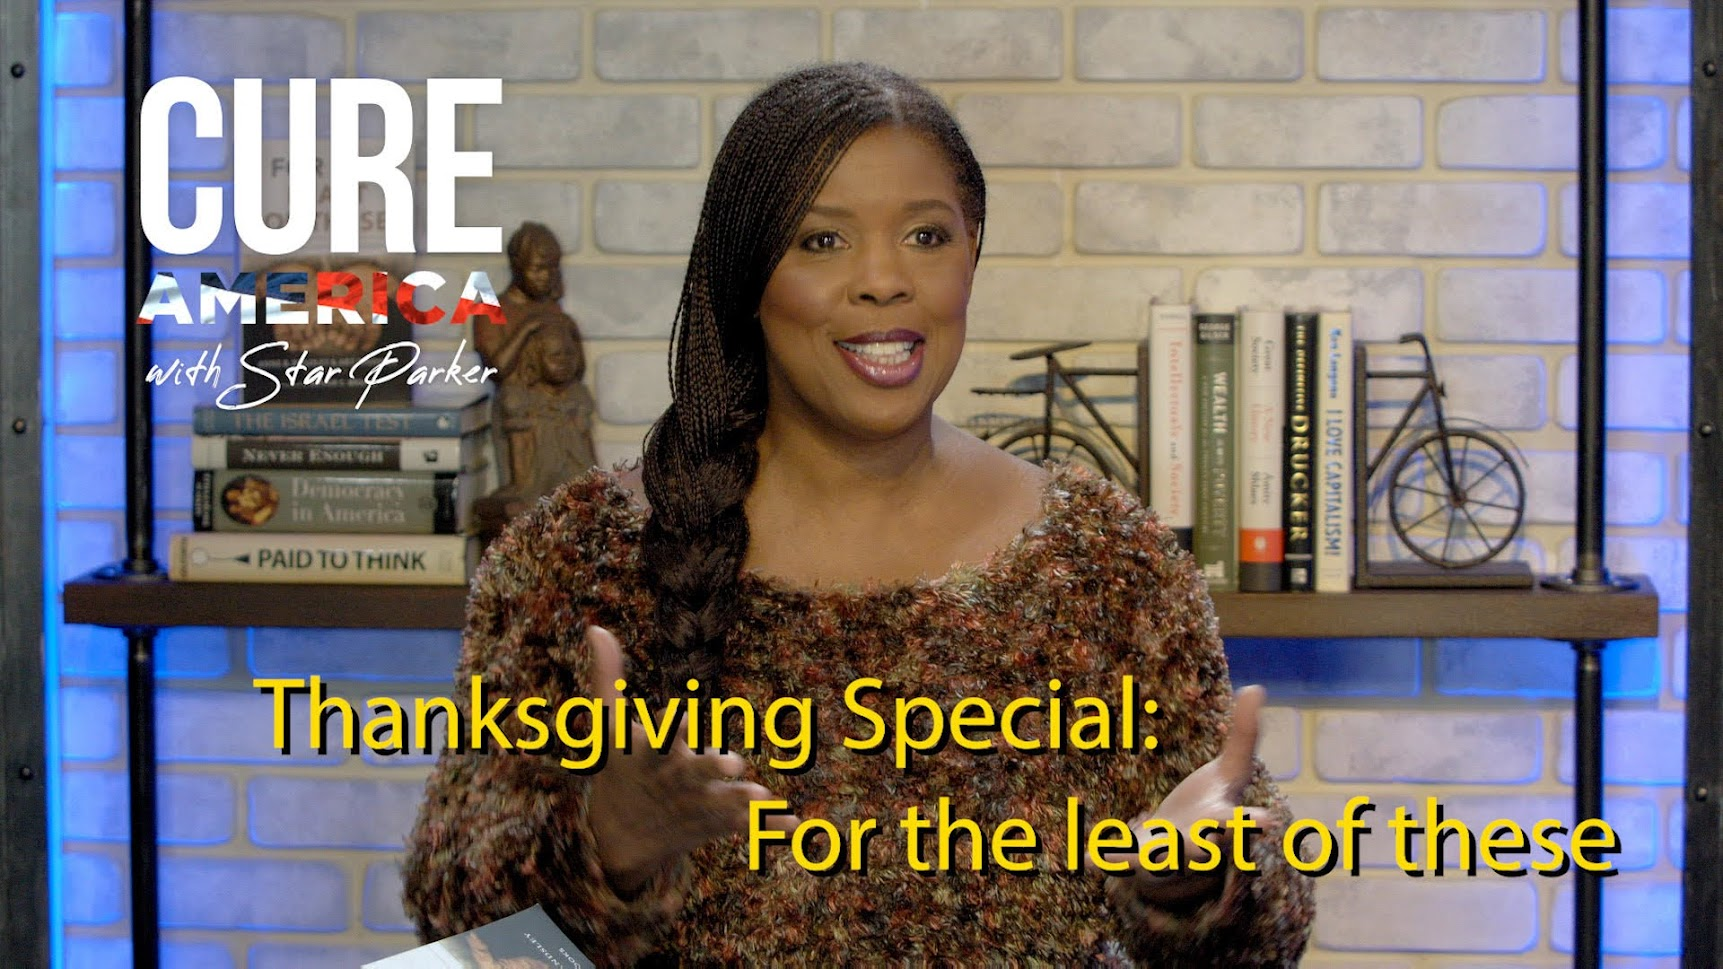 Thanksgiving Special: For the least of these